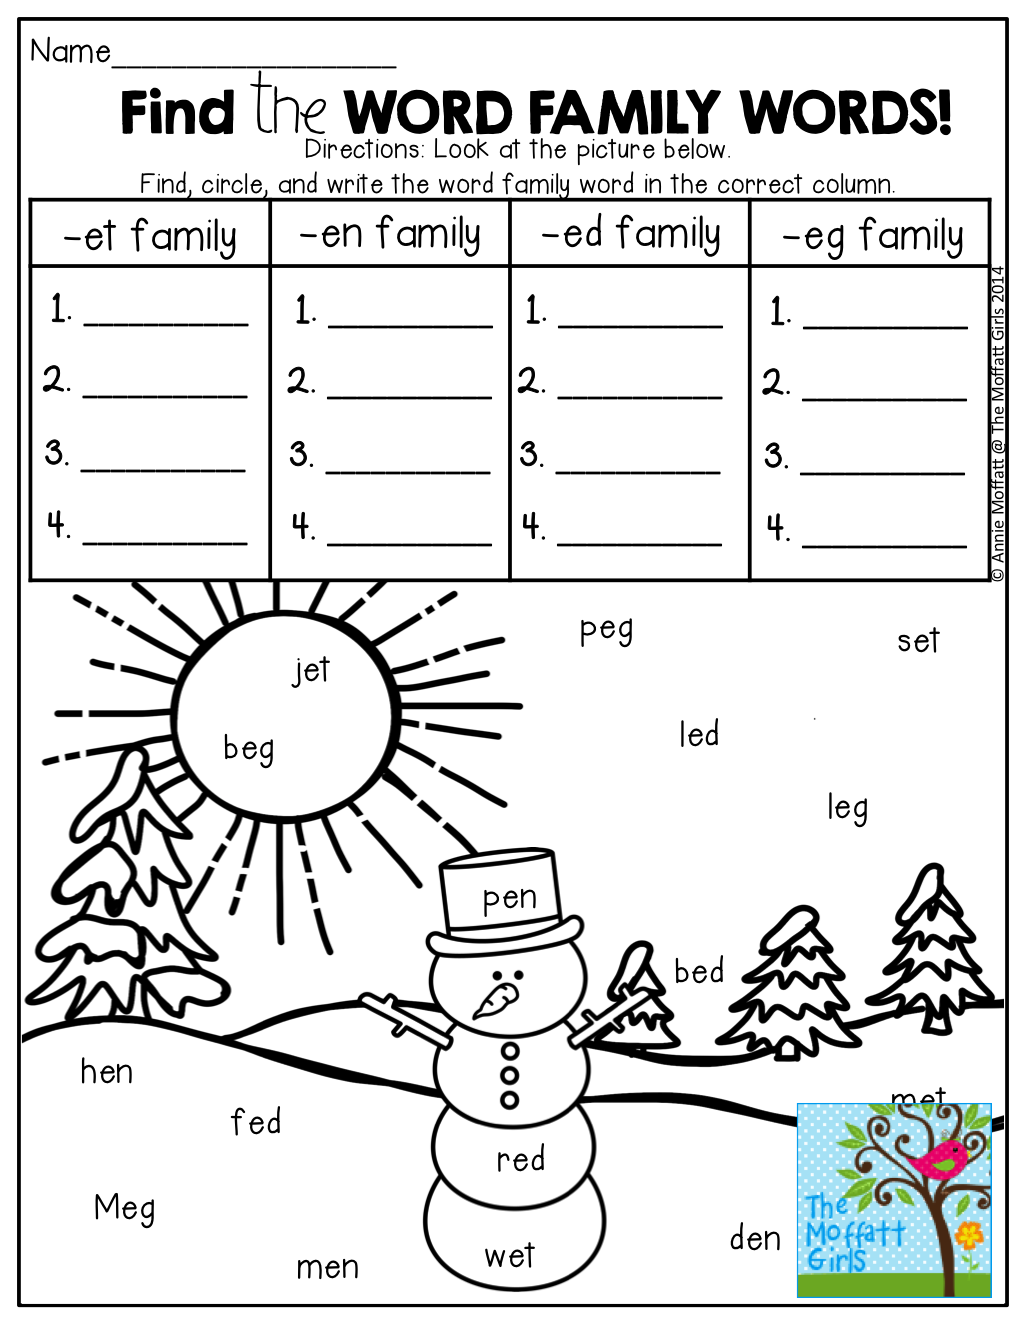 Find The Hidden Word Family Words And Write Them In The